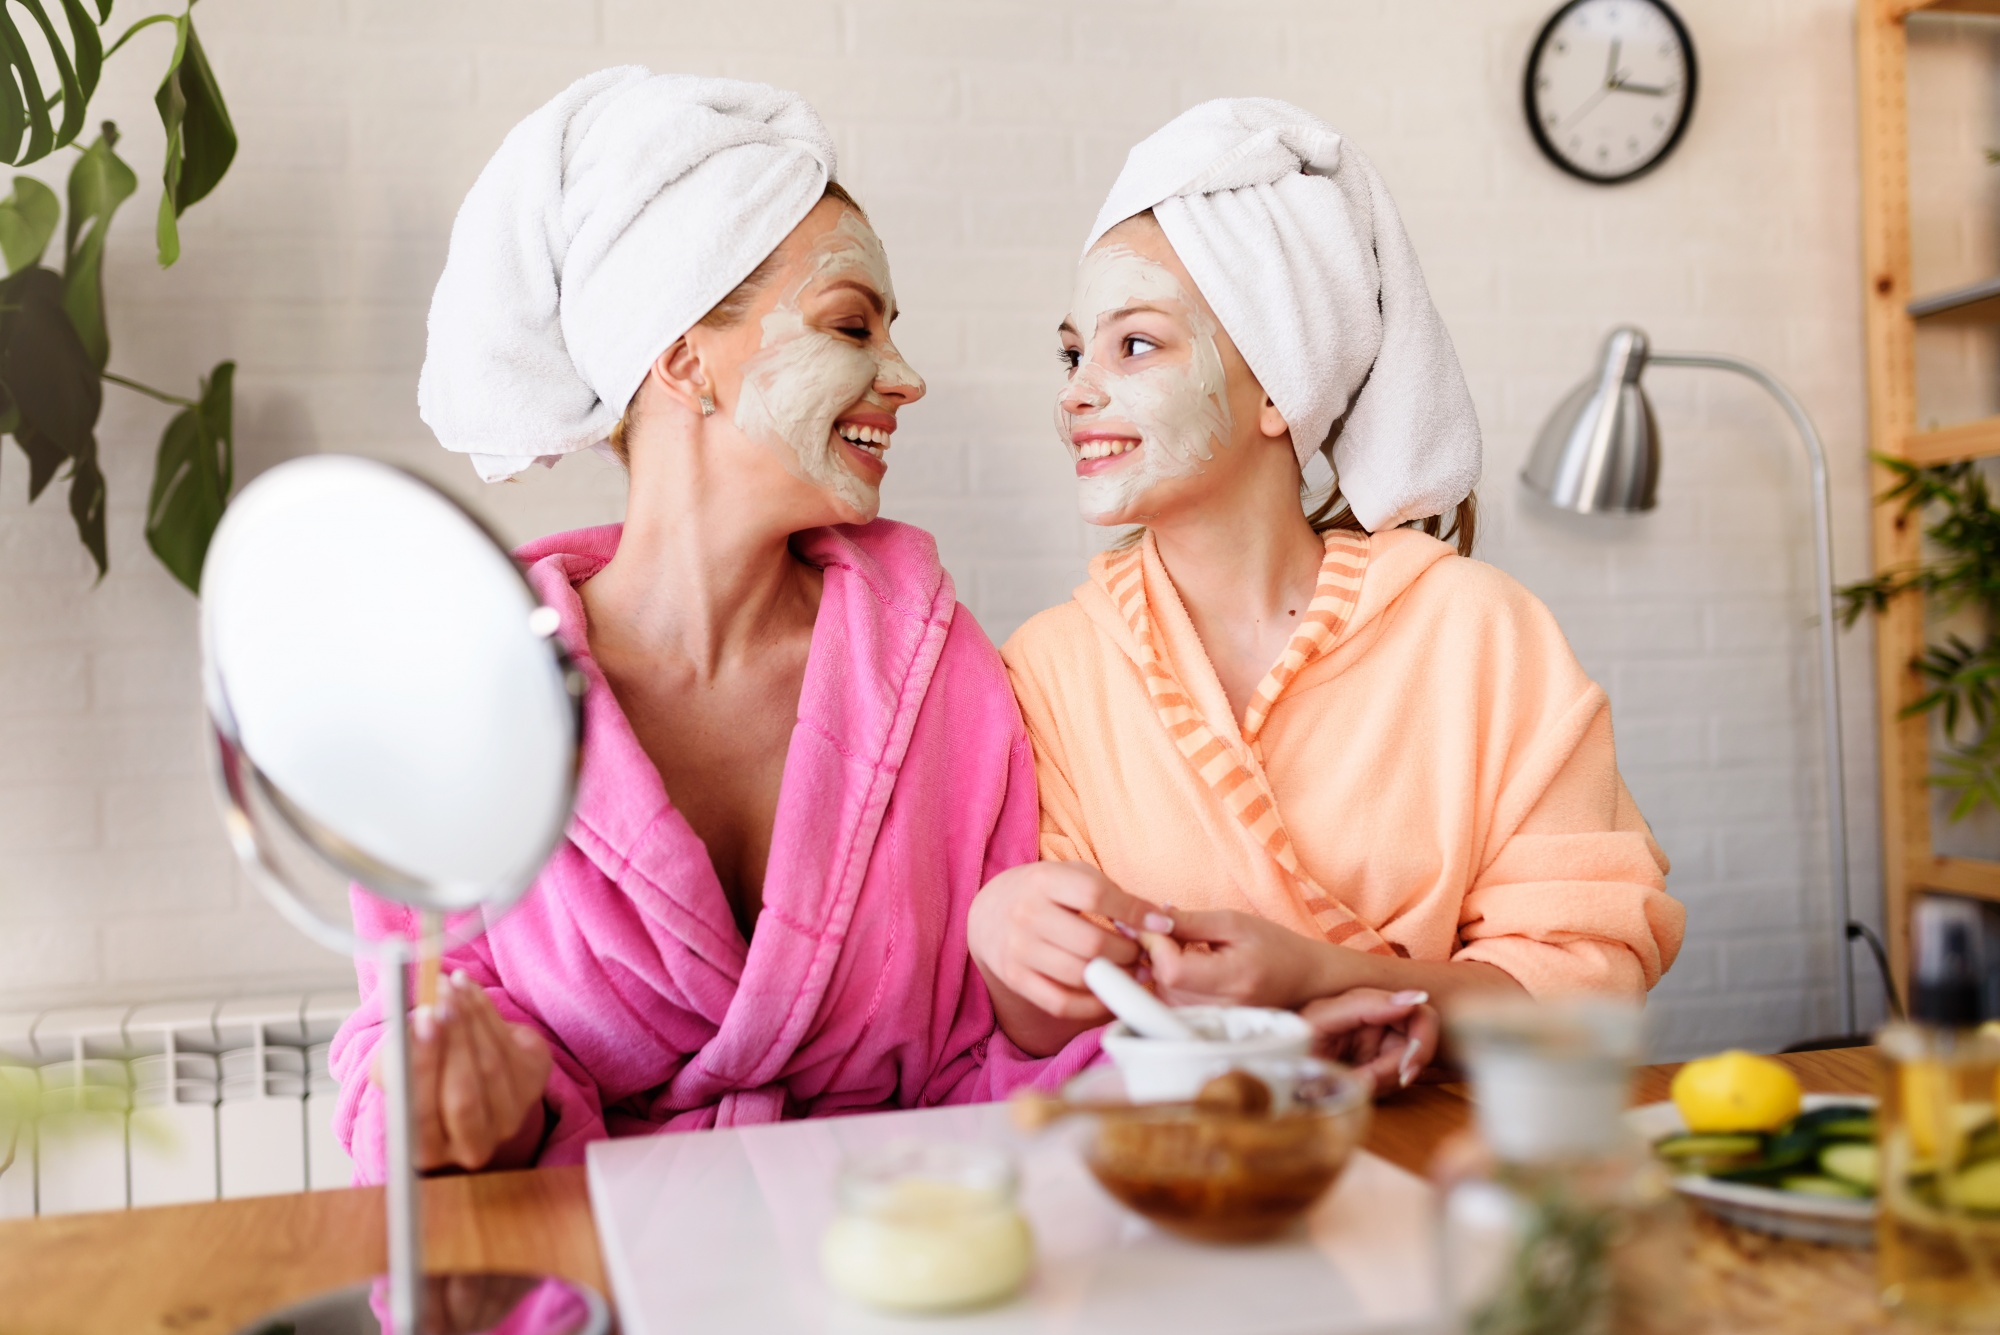 Mother daughter spa day, mom and daughter in bathrobes and towels using natural cosmetics and having fun at home